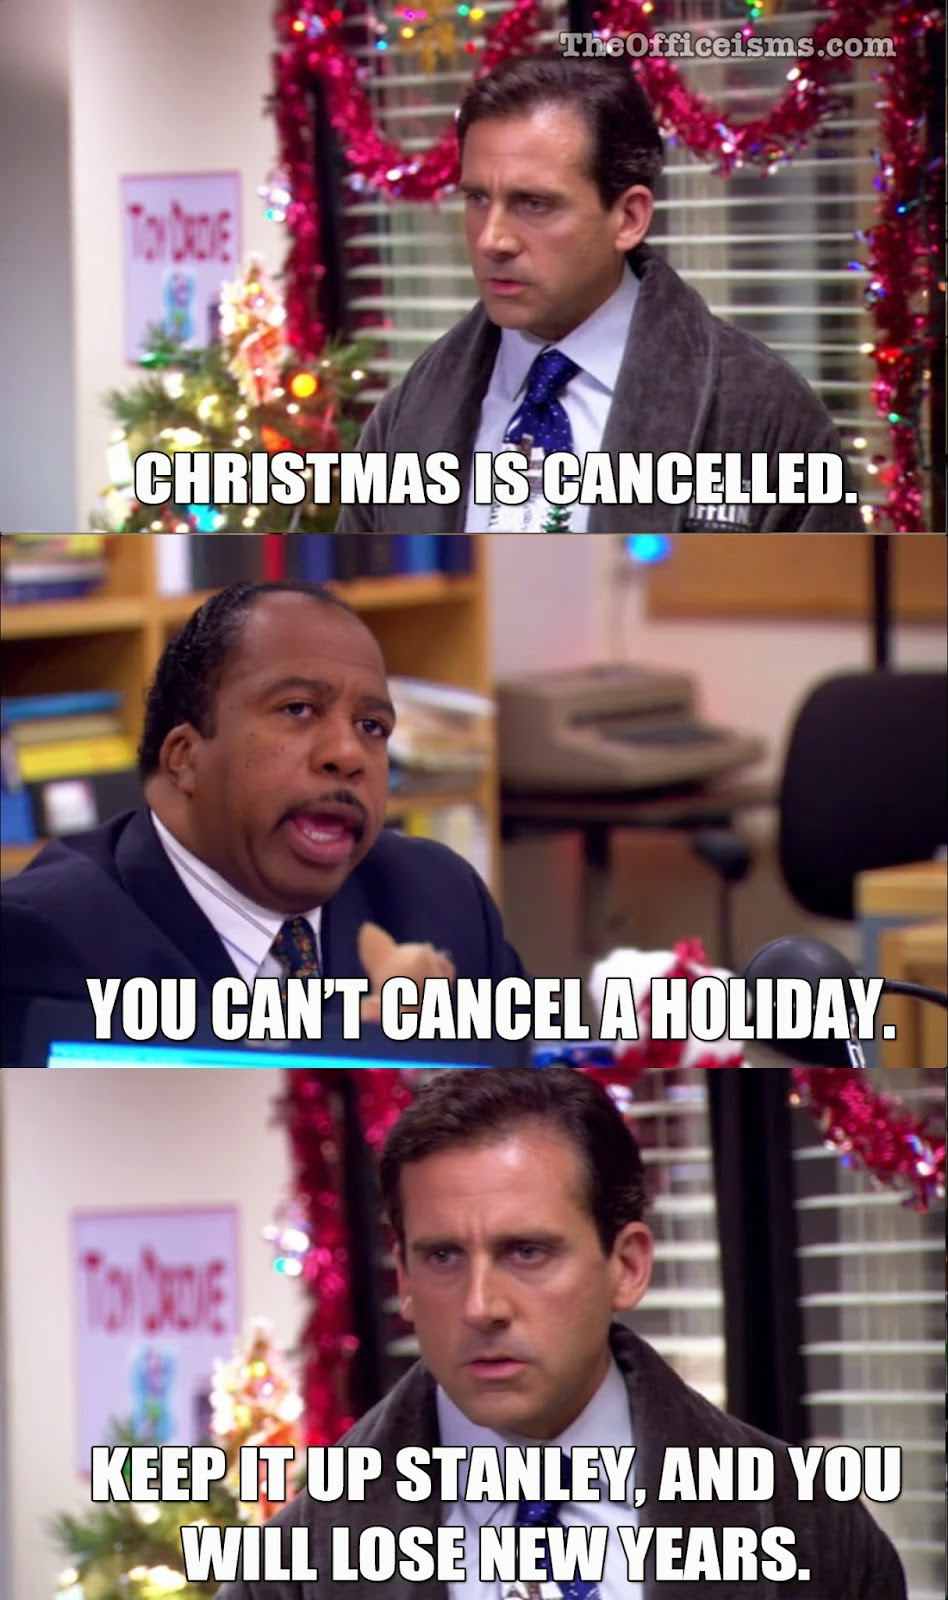 michael scott quote the office meme christmas is cancelled new years stanley - The Office Christmas Quotes